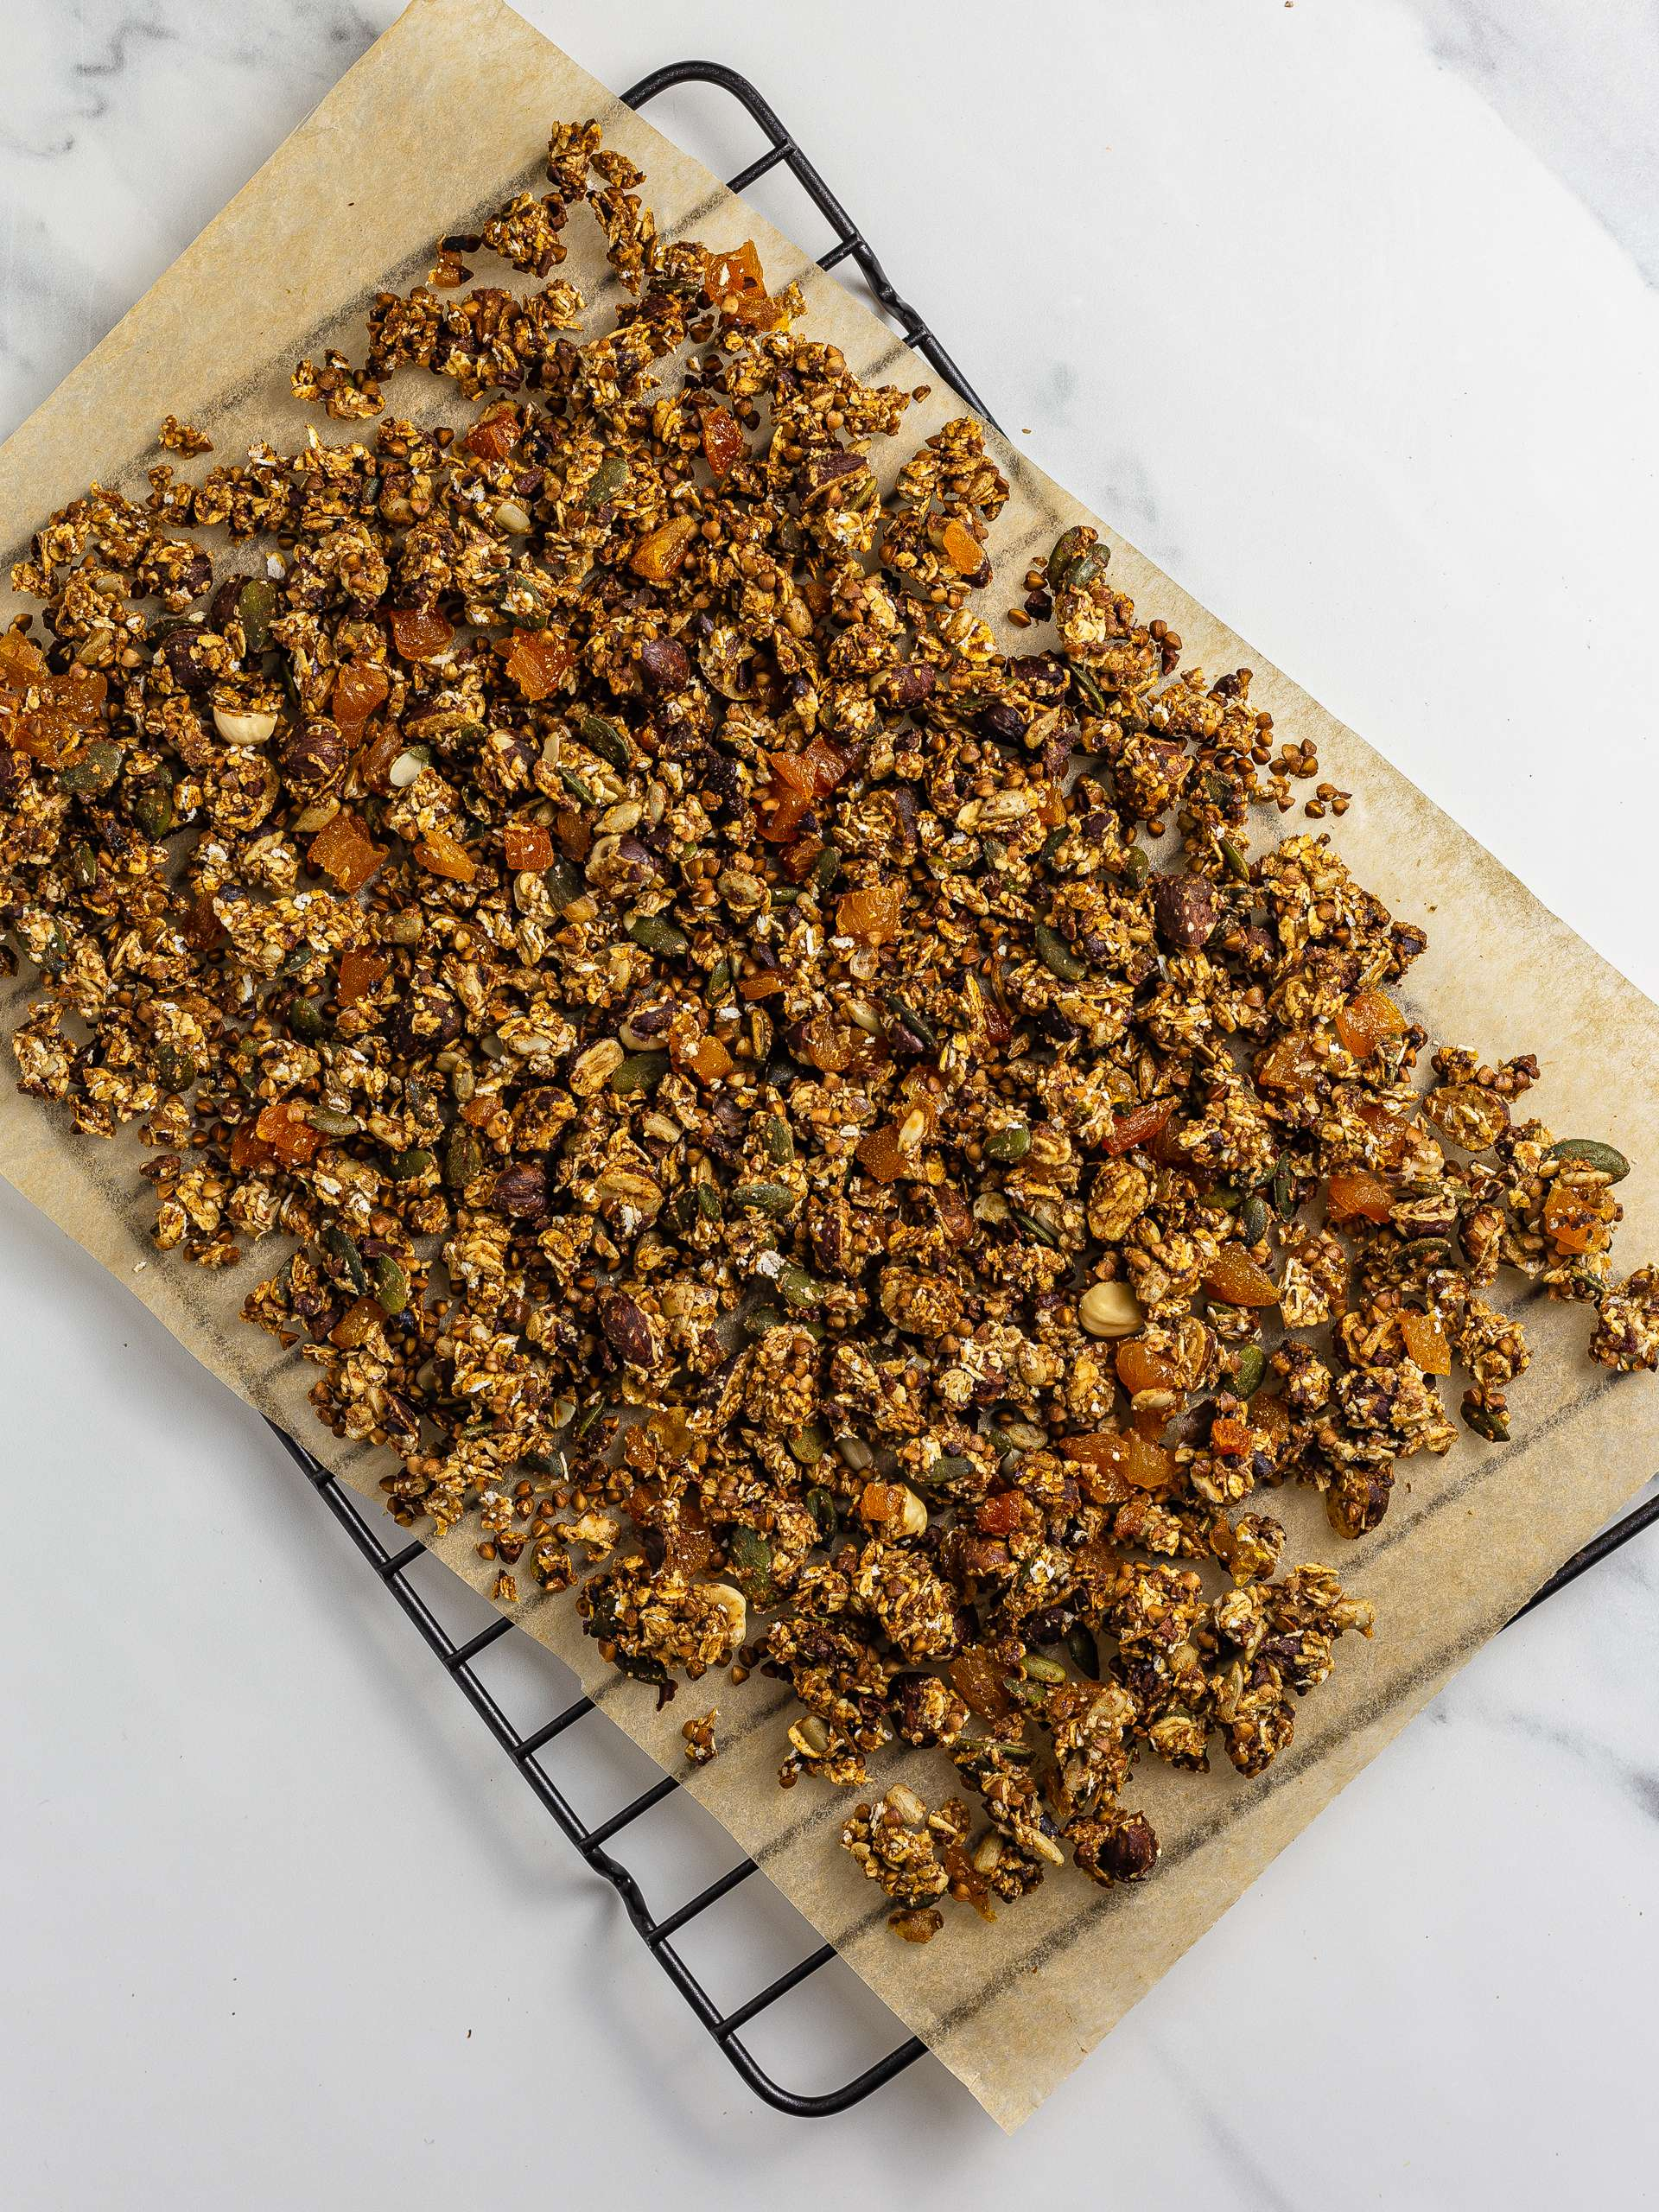 oven-baked granola cooling on a wire rack